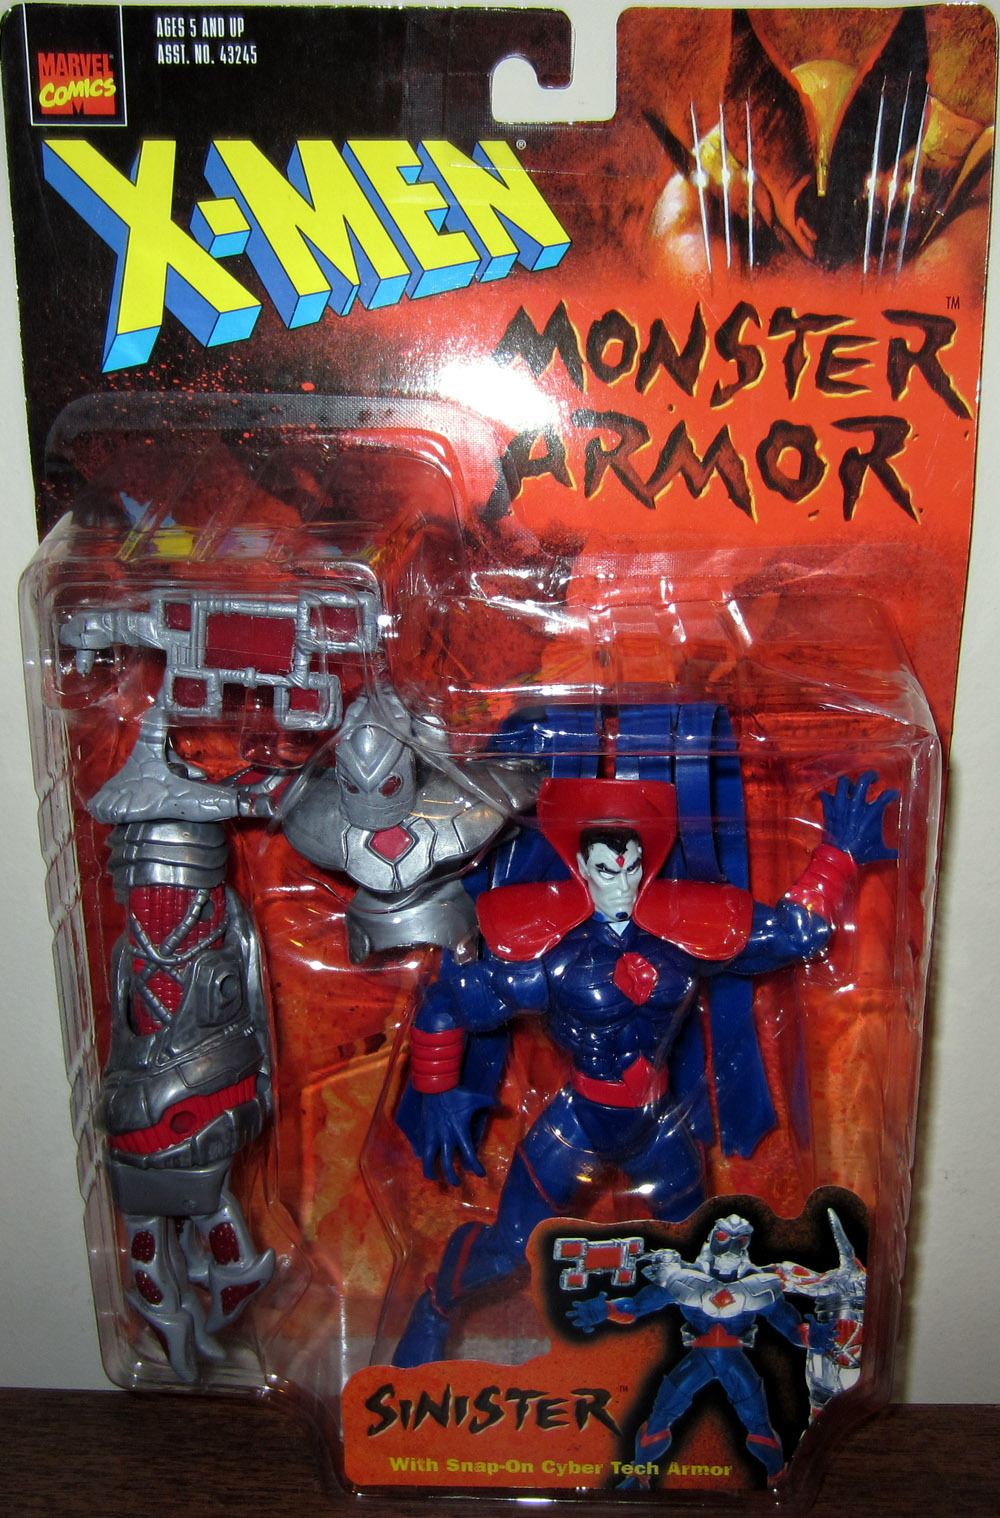 Sinister (Monster Armor)